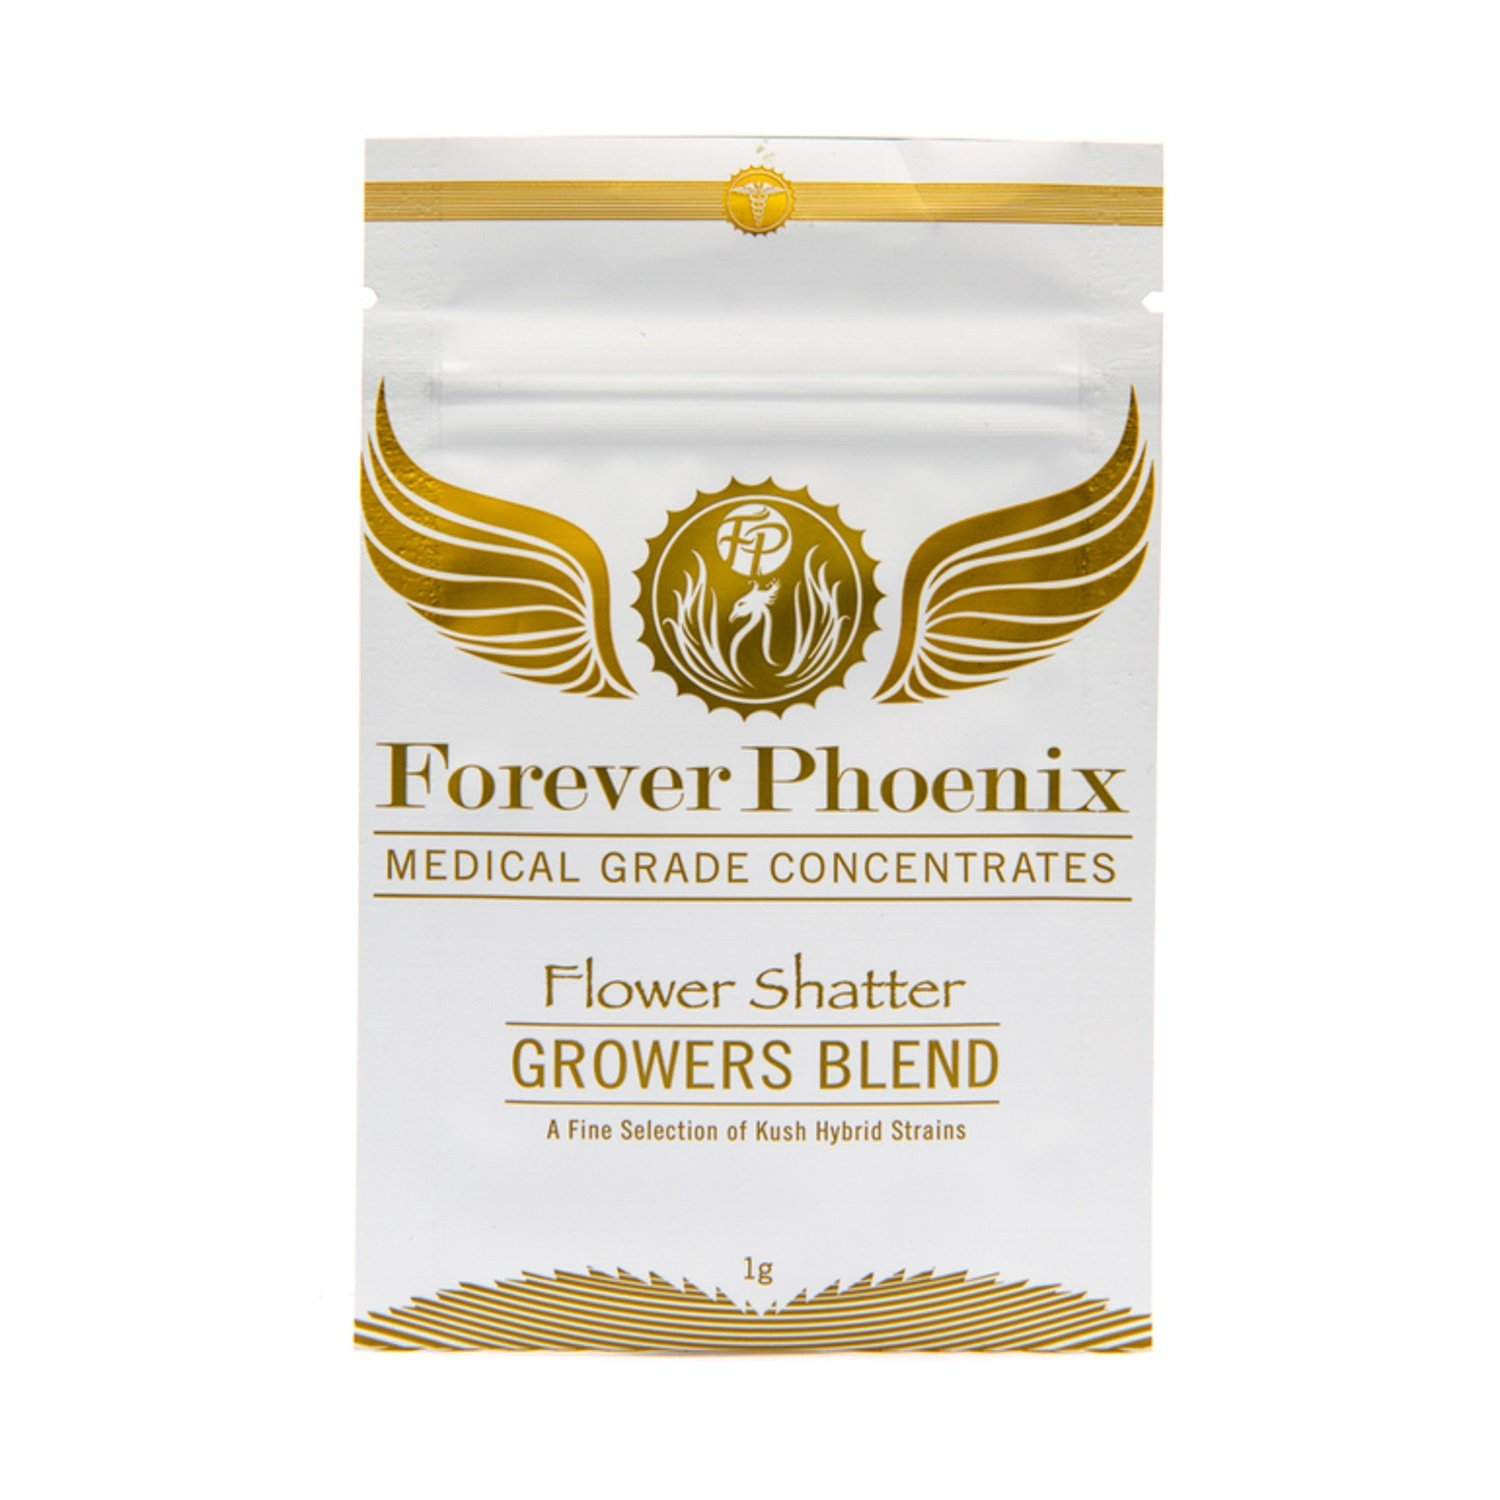 AAAA Flower Shatter Grower's Blend by Forever Phoenix